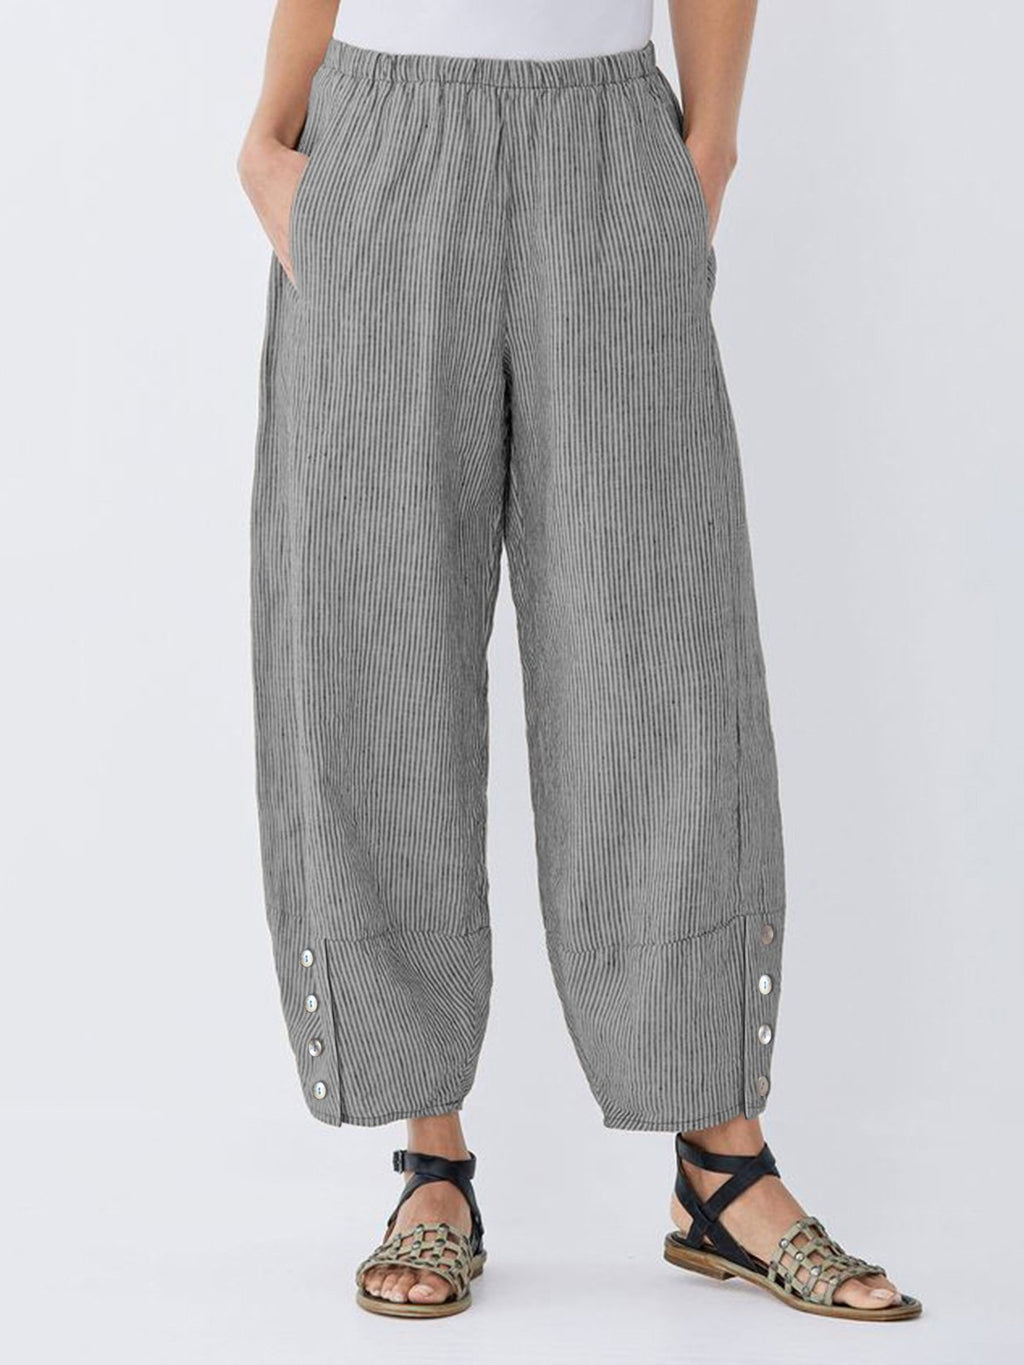 Linen Striped Summer Pants